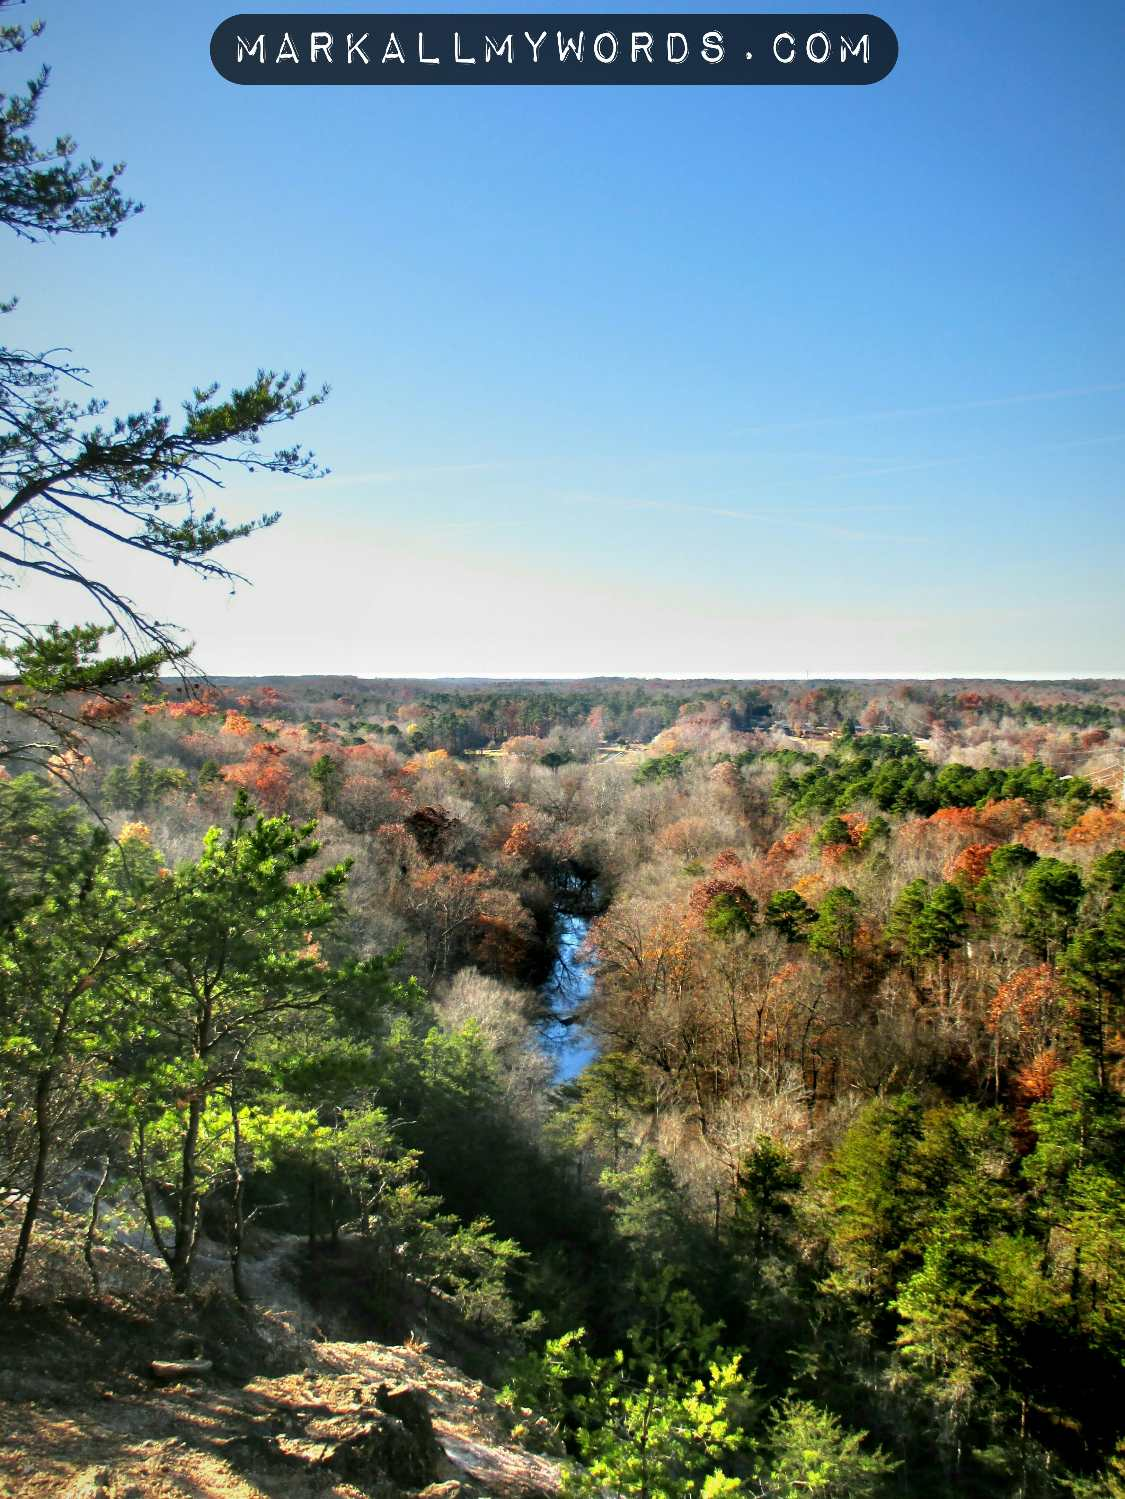 View of the Eno River from the Overlook at Occoneechee Mountain